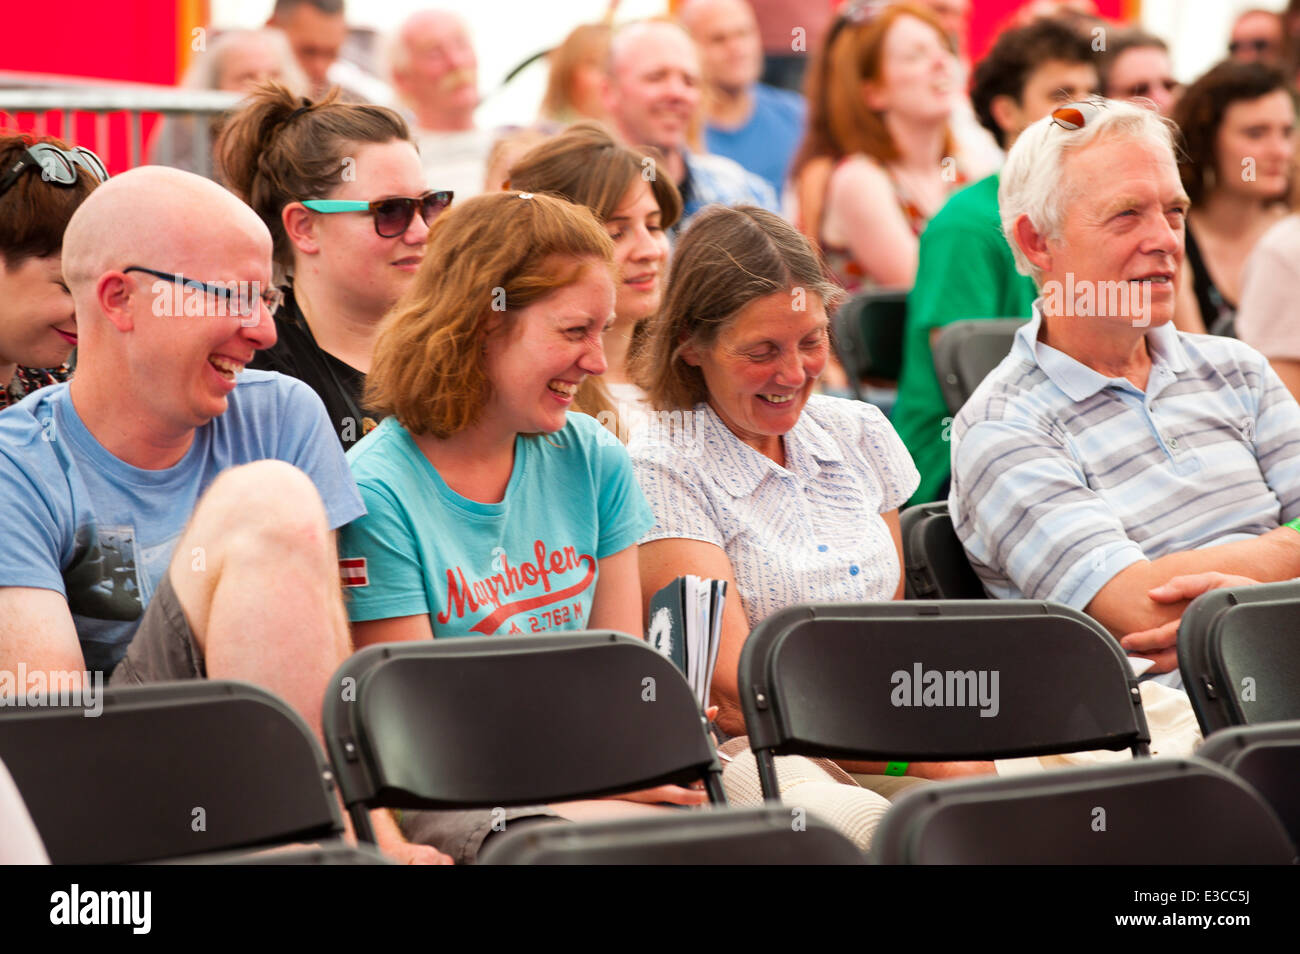 Llandeilo, Carmarthenshire, Wales, UK. 22nd June, 2014. The audience enjoy Mike's humour. Comedian Mike Wozniak - Stock Image